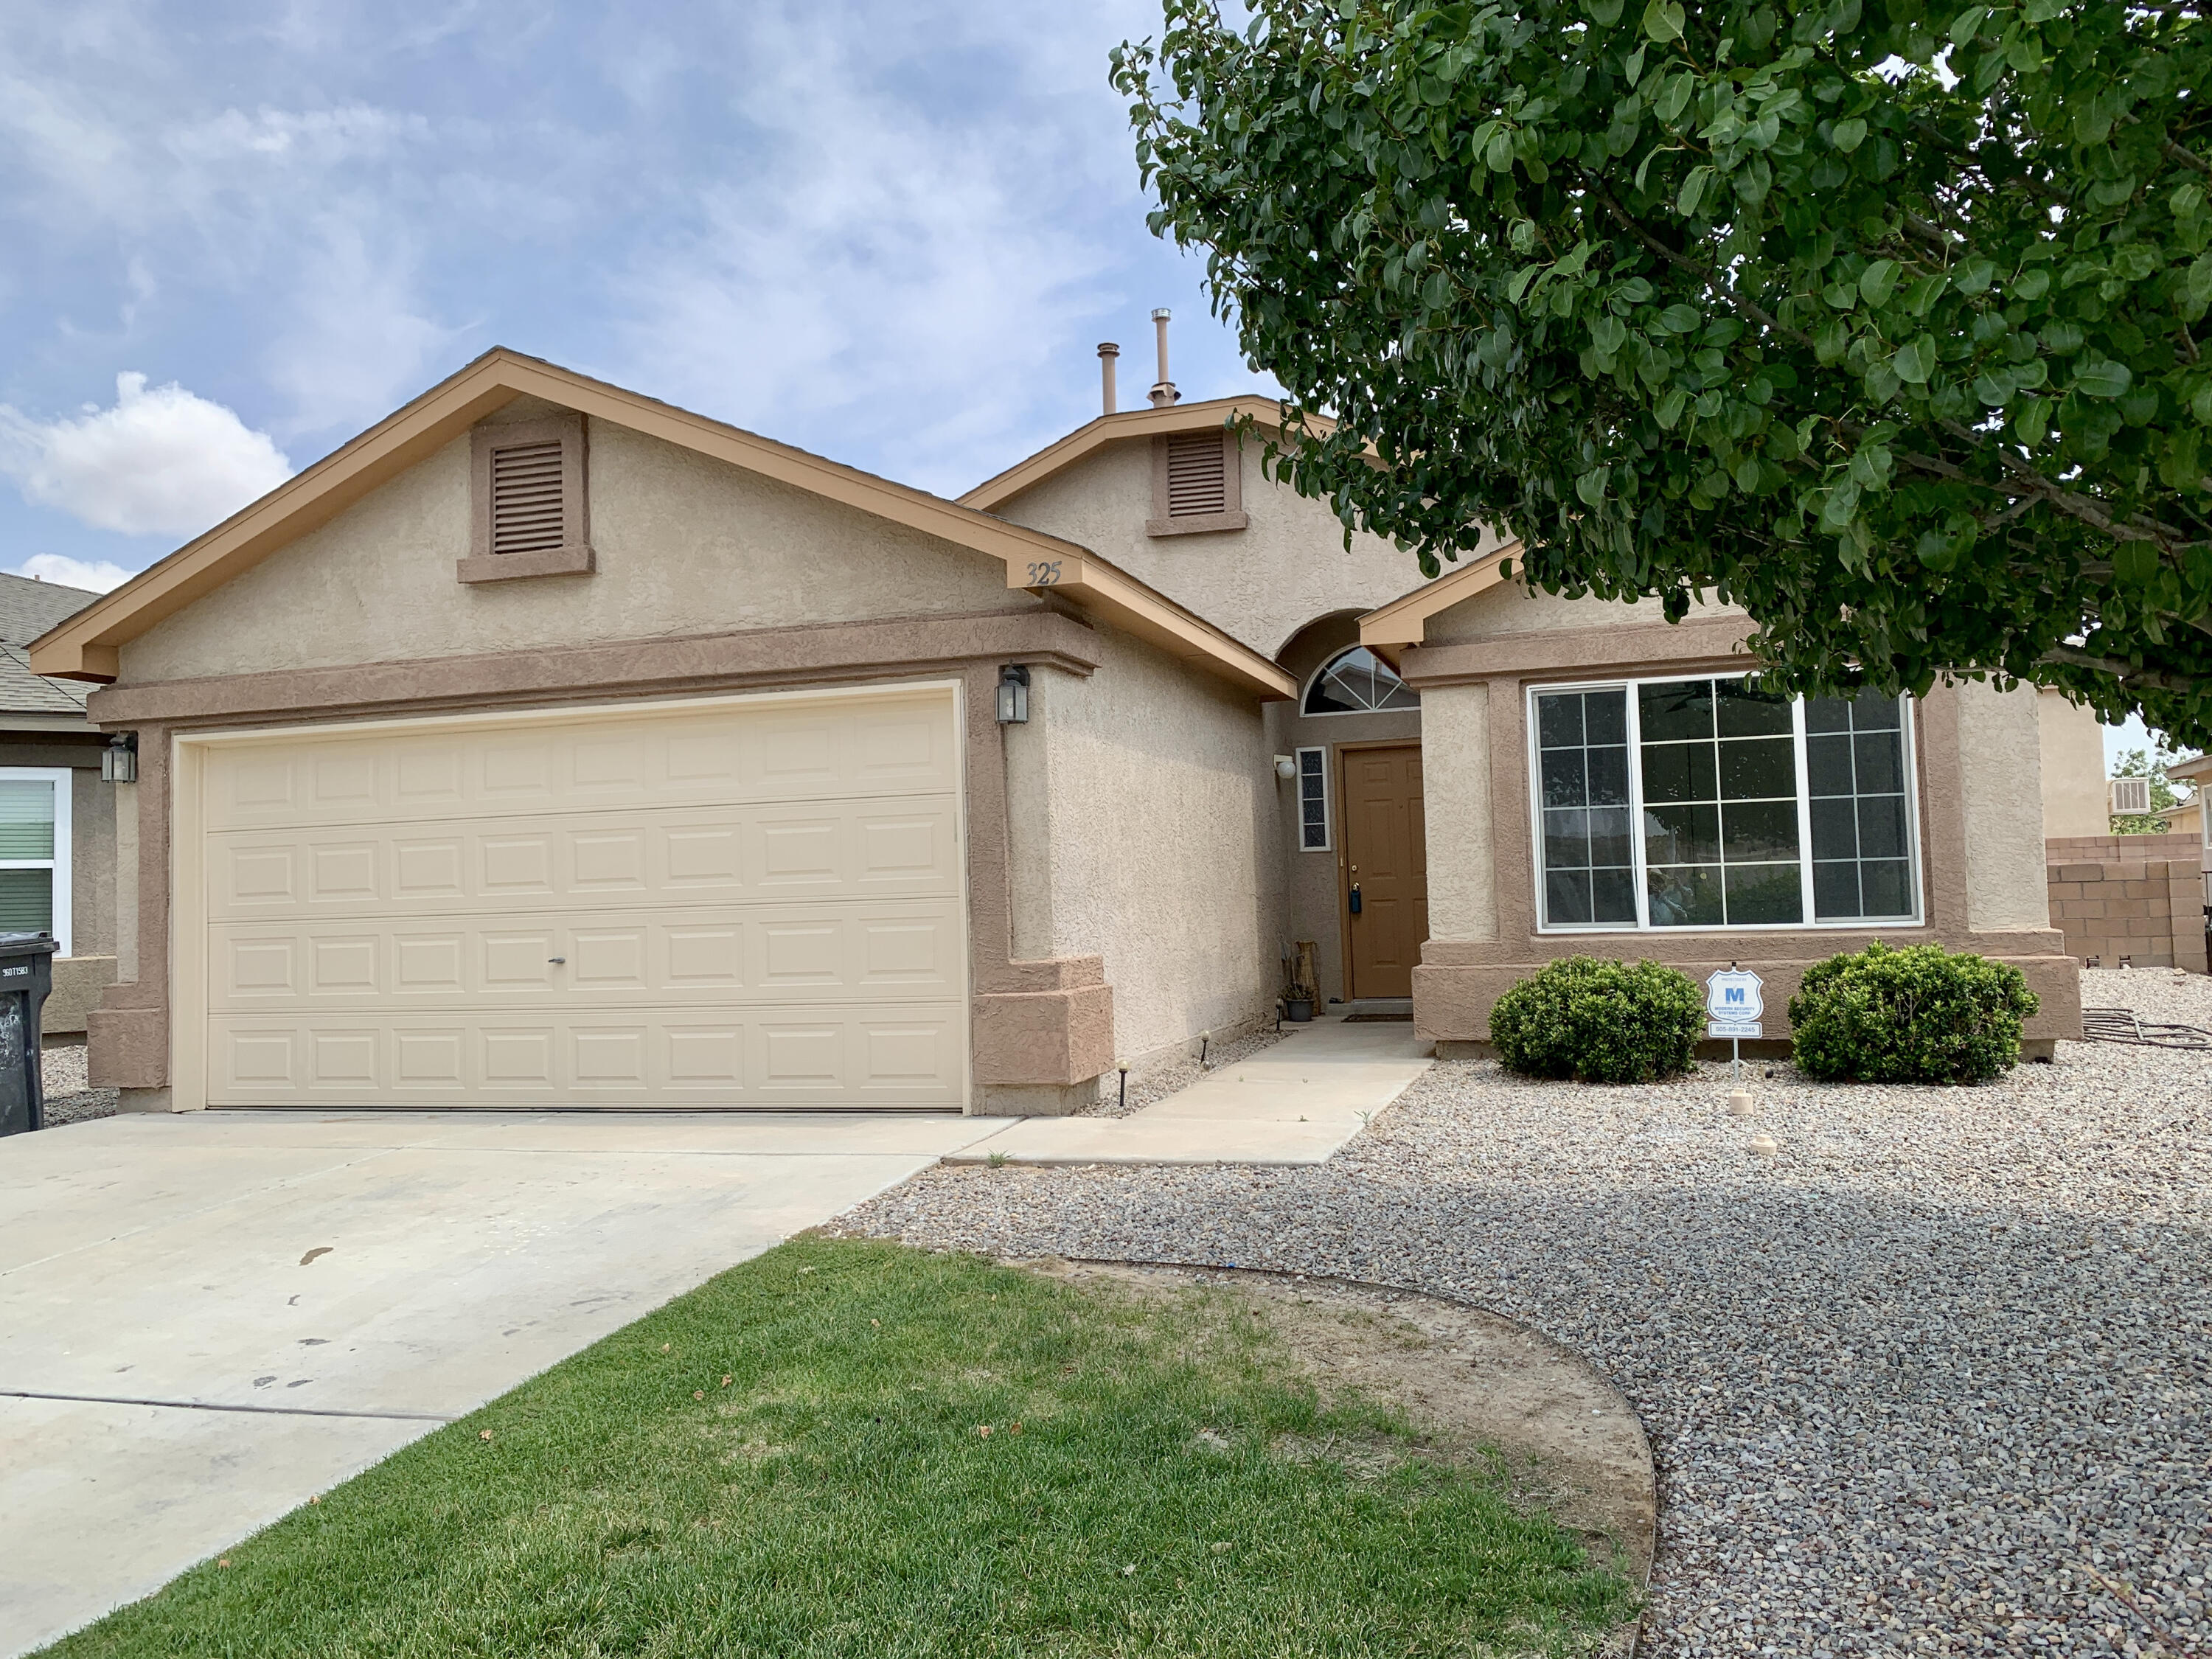 Beautiful contemporary Home in Rio Rancho3 bed 2 bath 2 Car Garage with Fresh paint, fireplace, vaulted celling contemporary tile